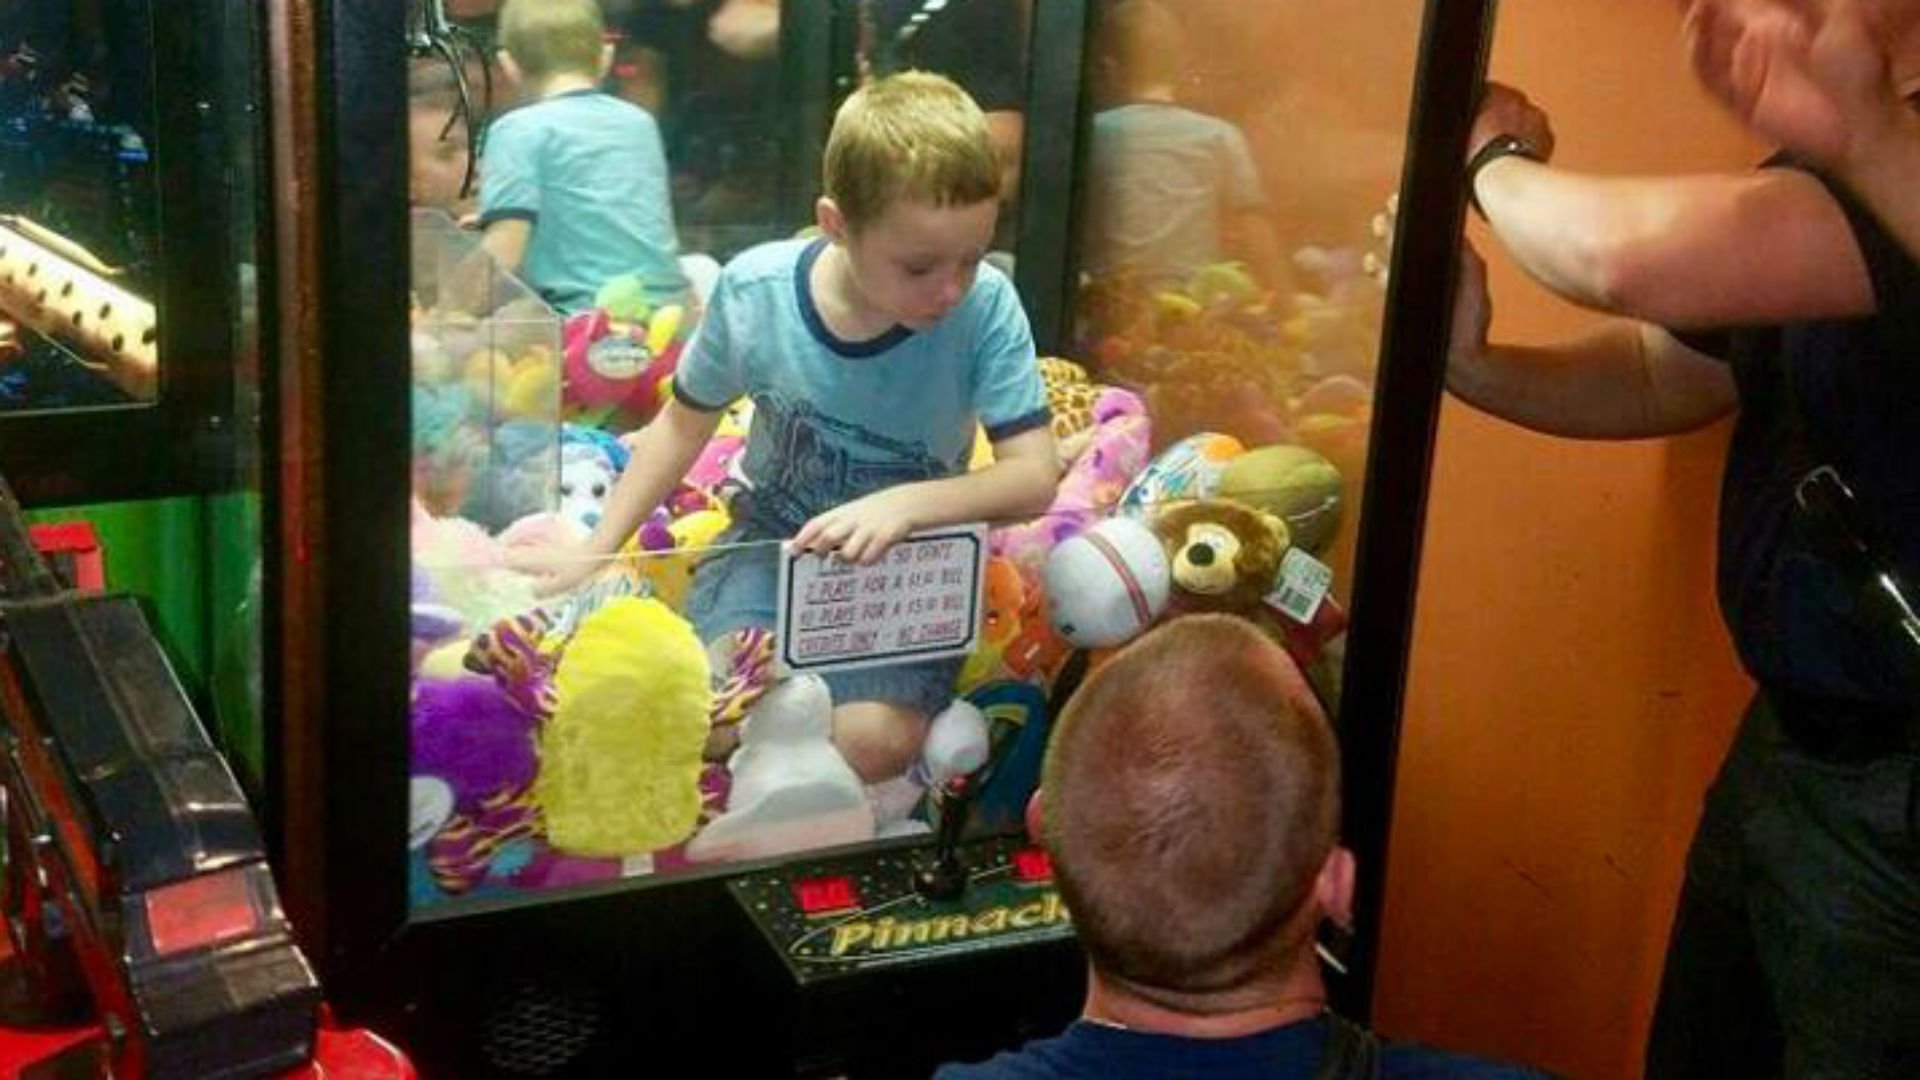 Child Rescued After Getting Stuck Inside Arcade Machine